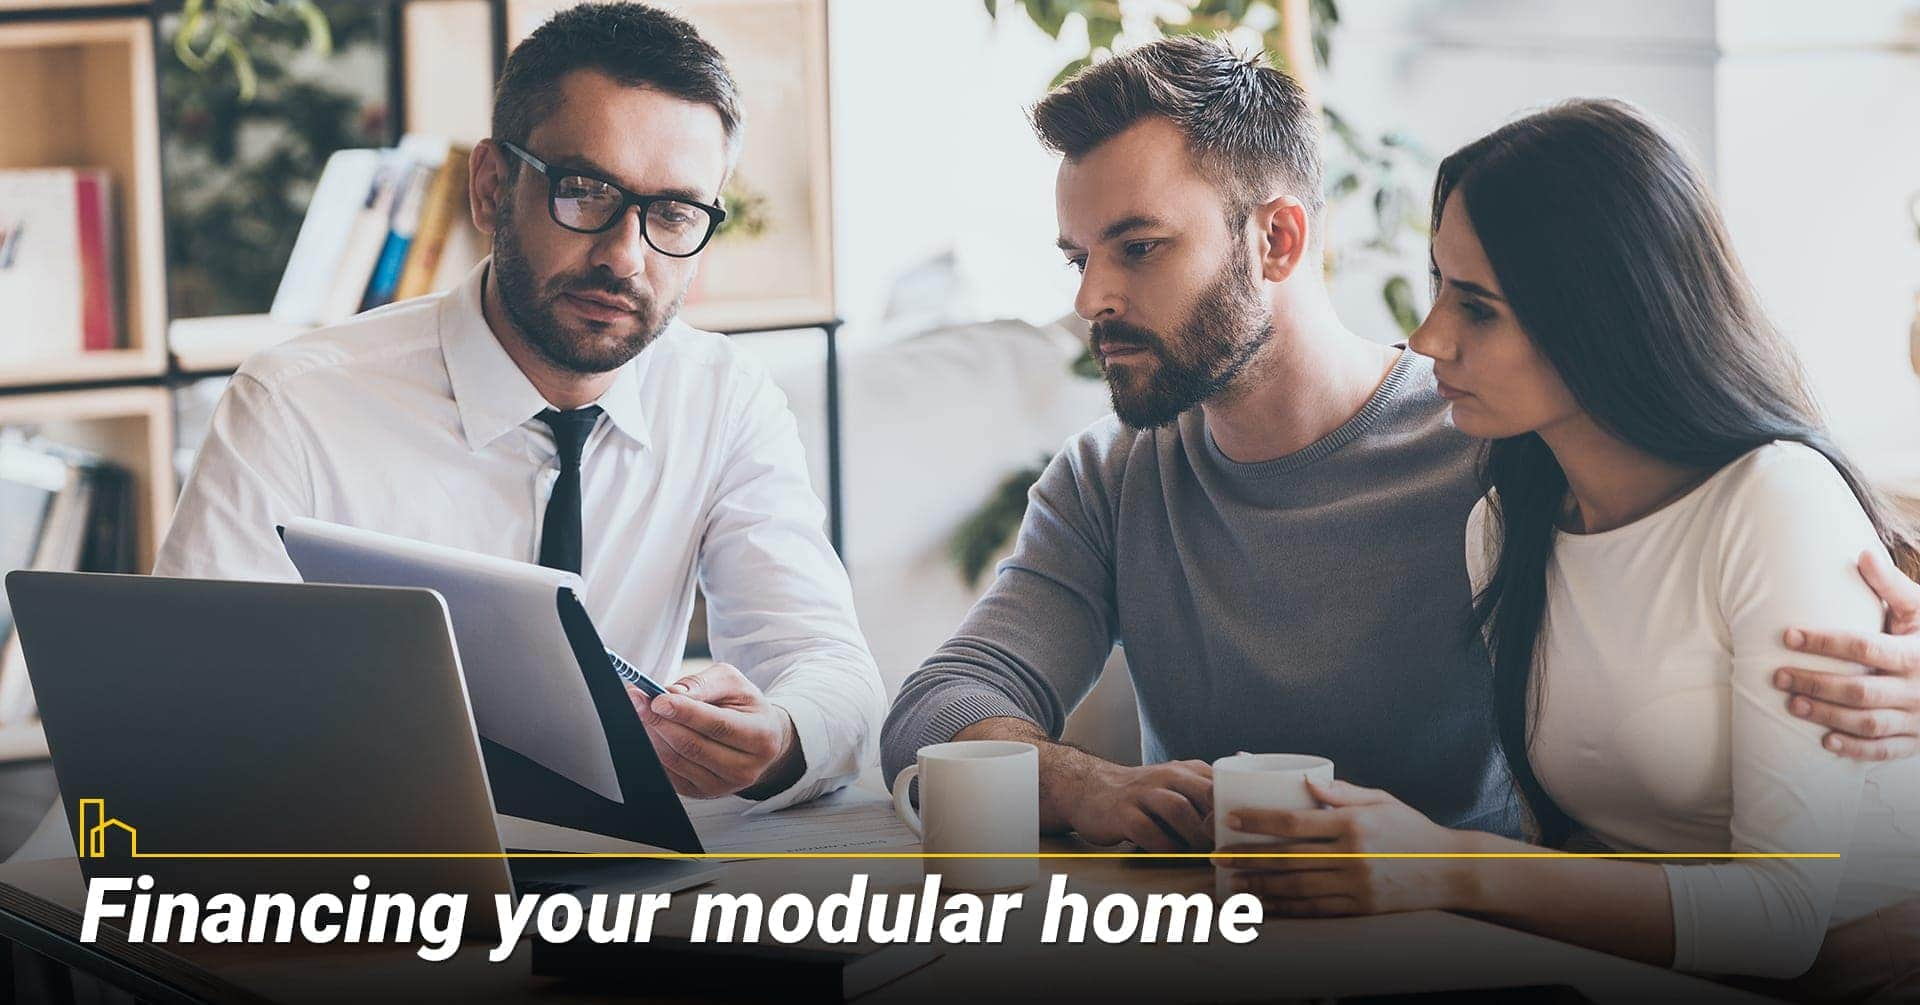 Financing your modular home, paying for your modular home